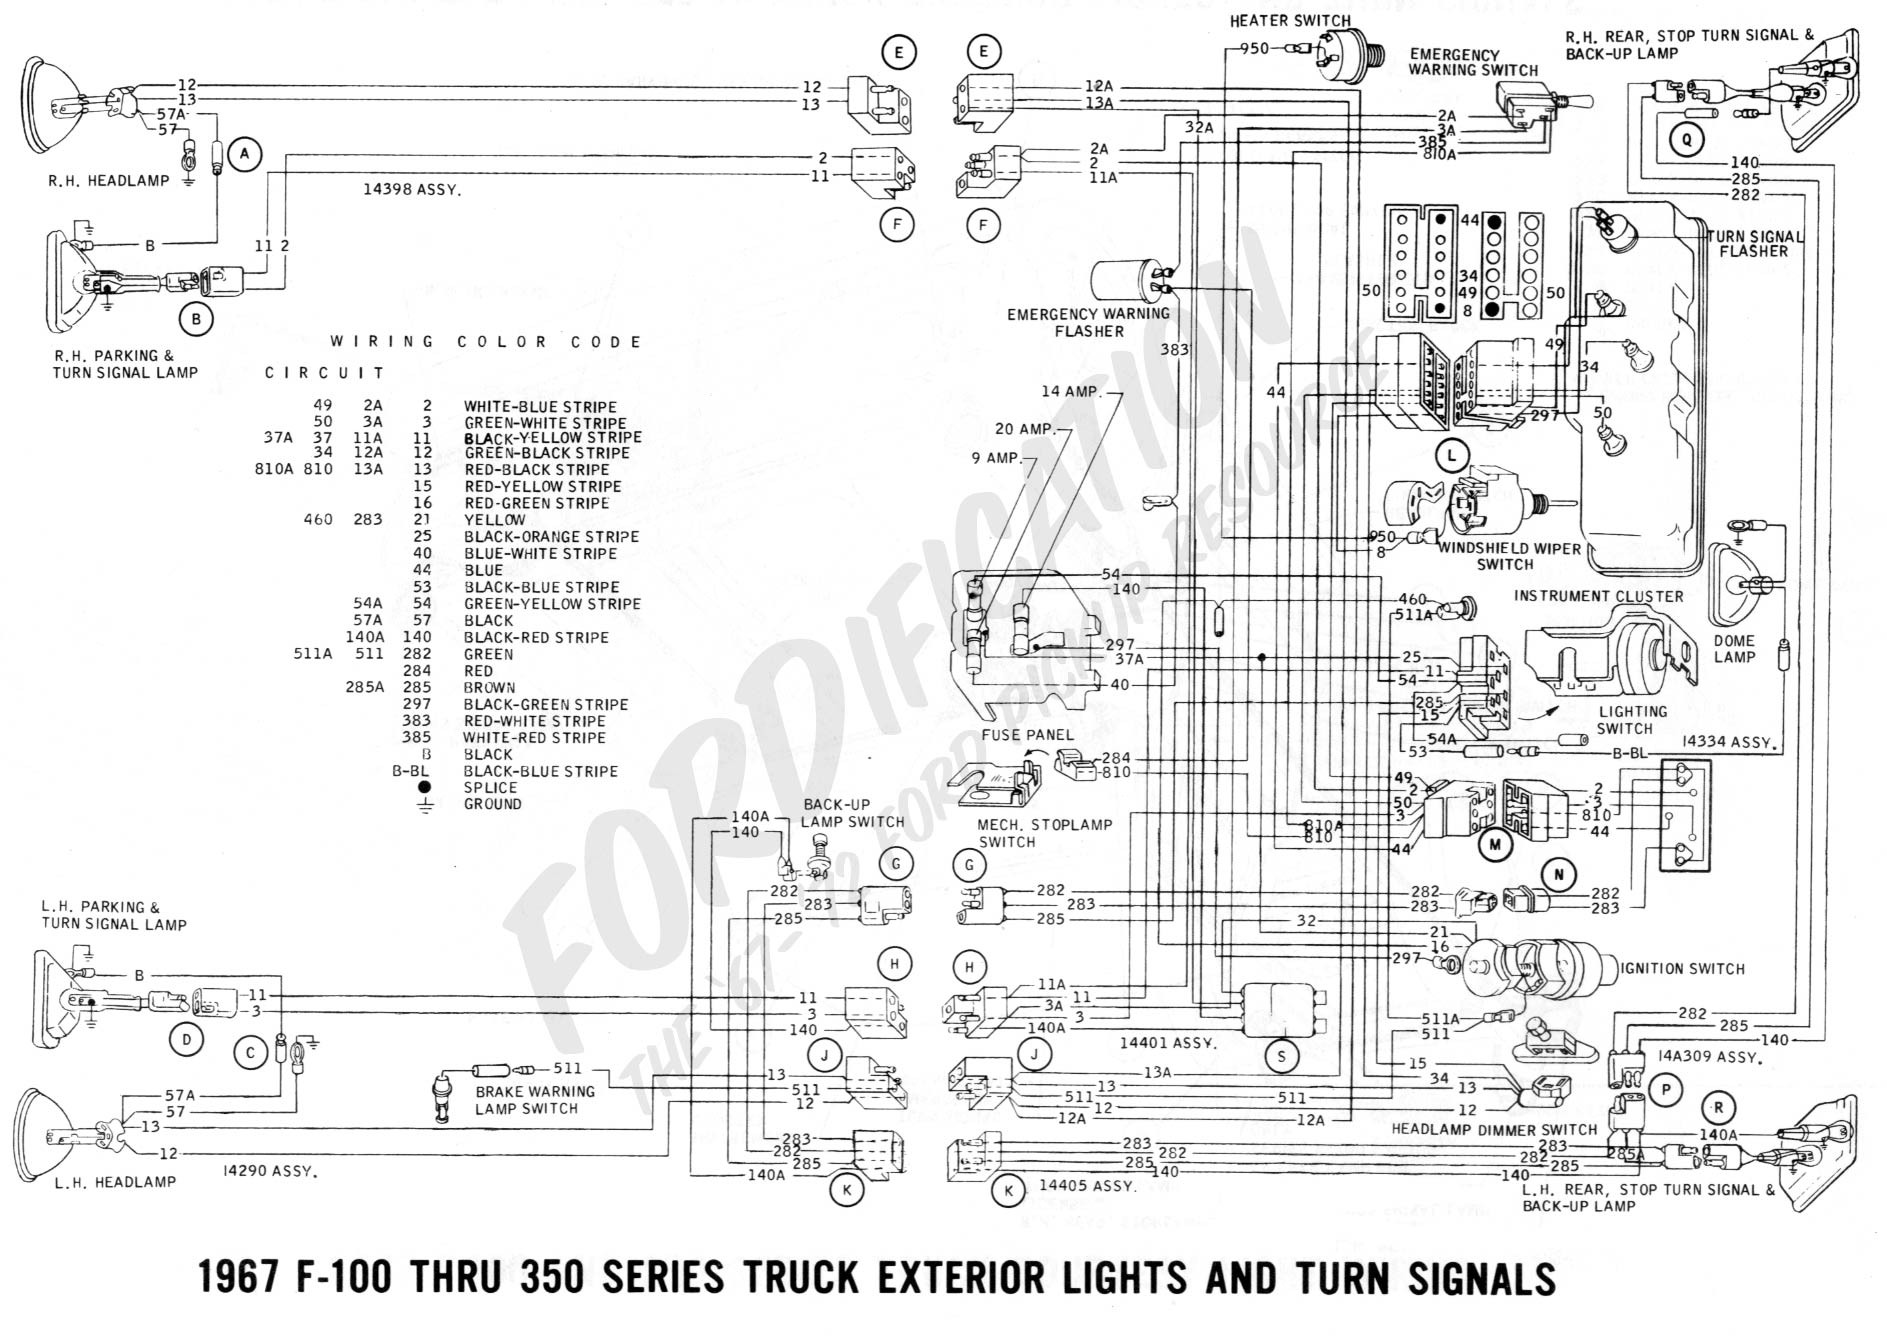 2000 Saturn Ignition Switch Wiring Diagram Free Download Sl2